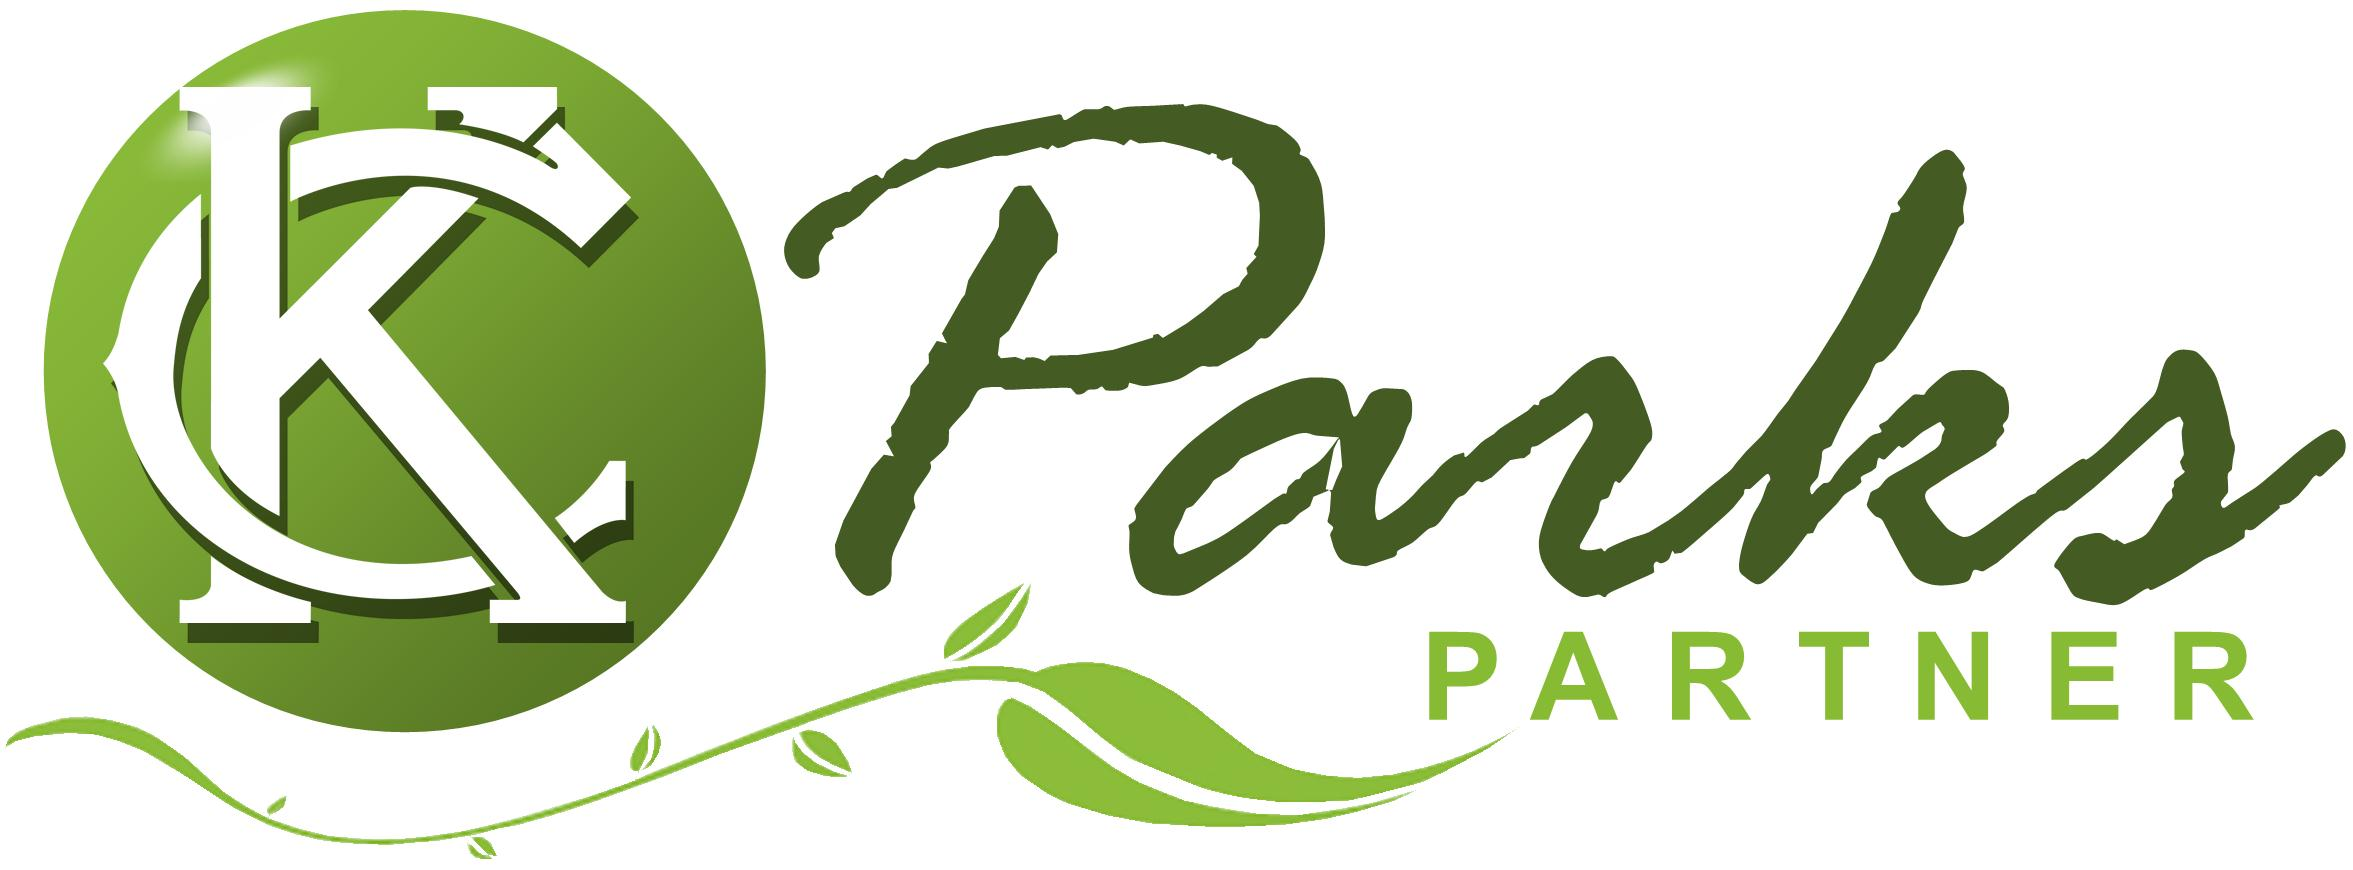 new-kc-parks-partner-logo